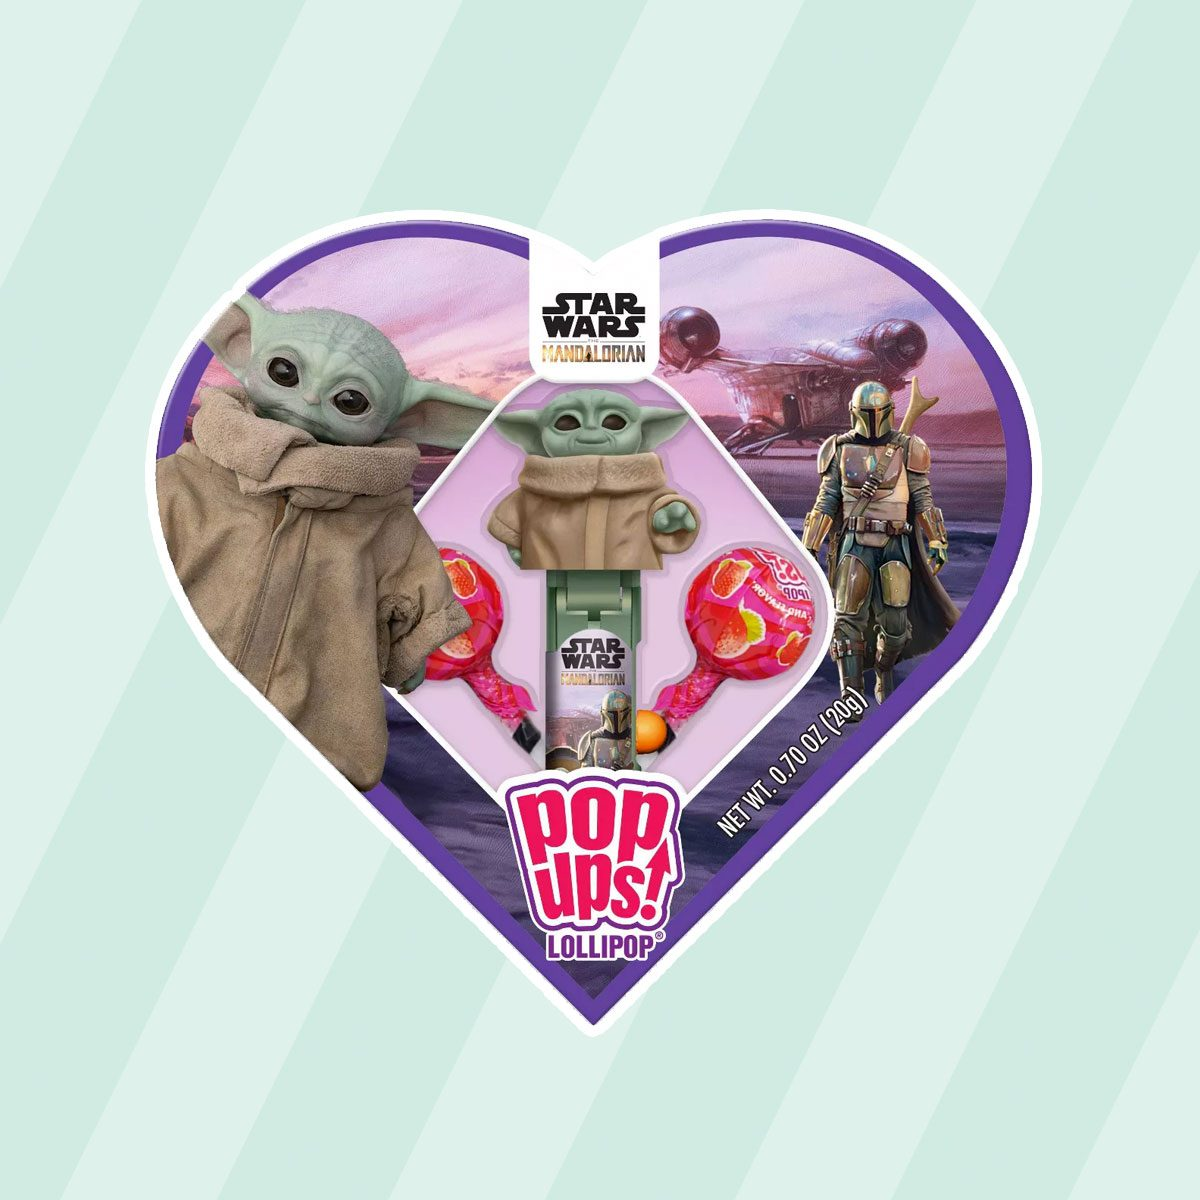 Star Wars Mandalorian Pop Ups Lollipop Heart Box